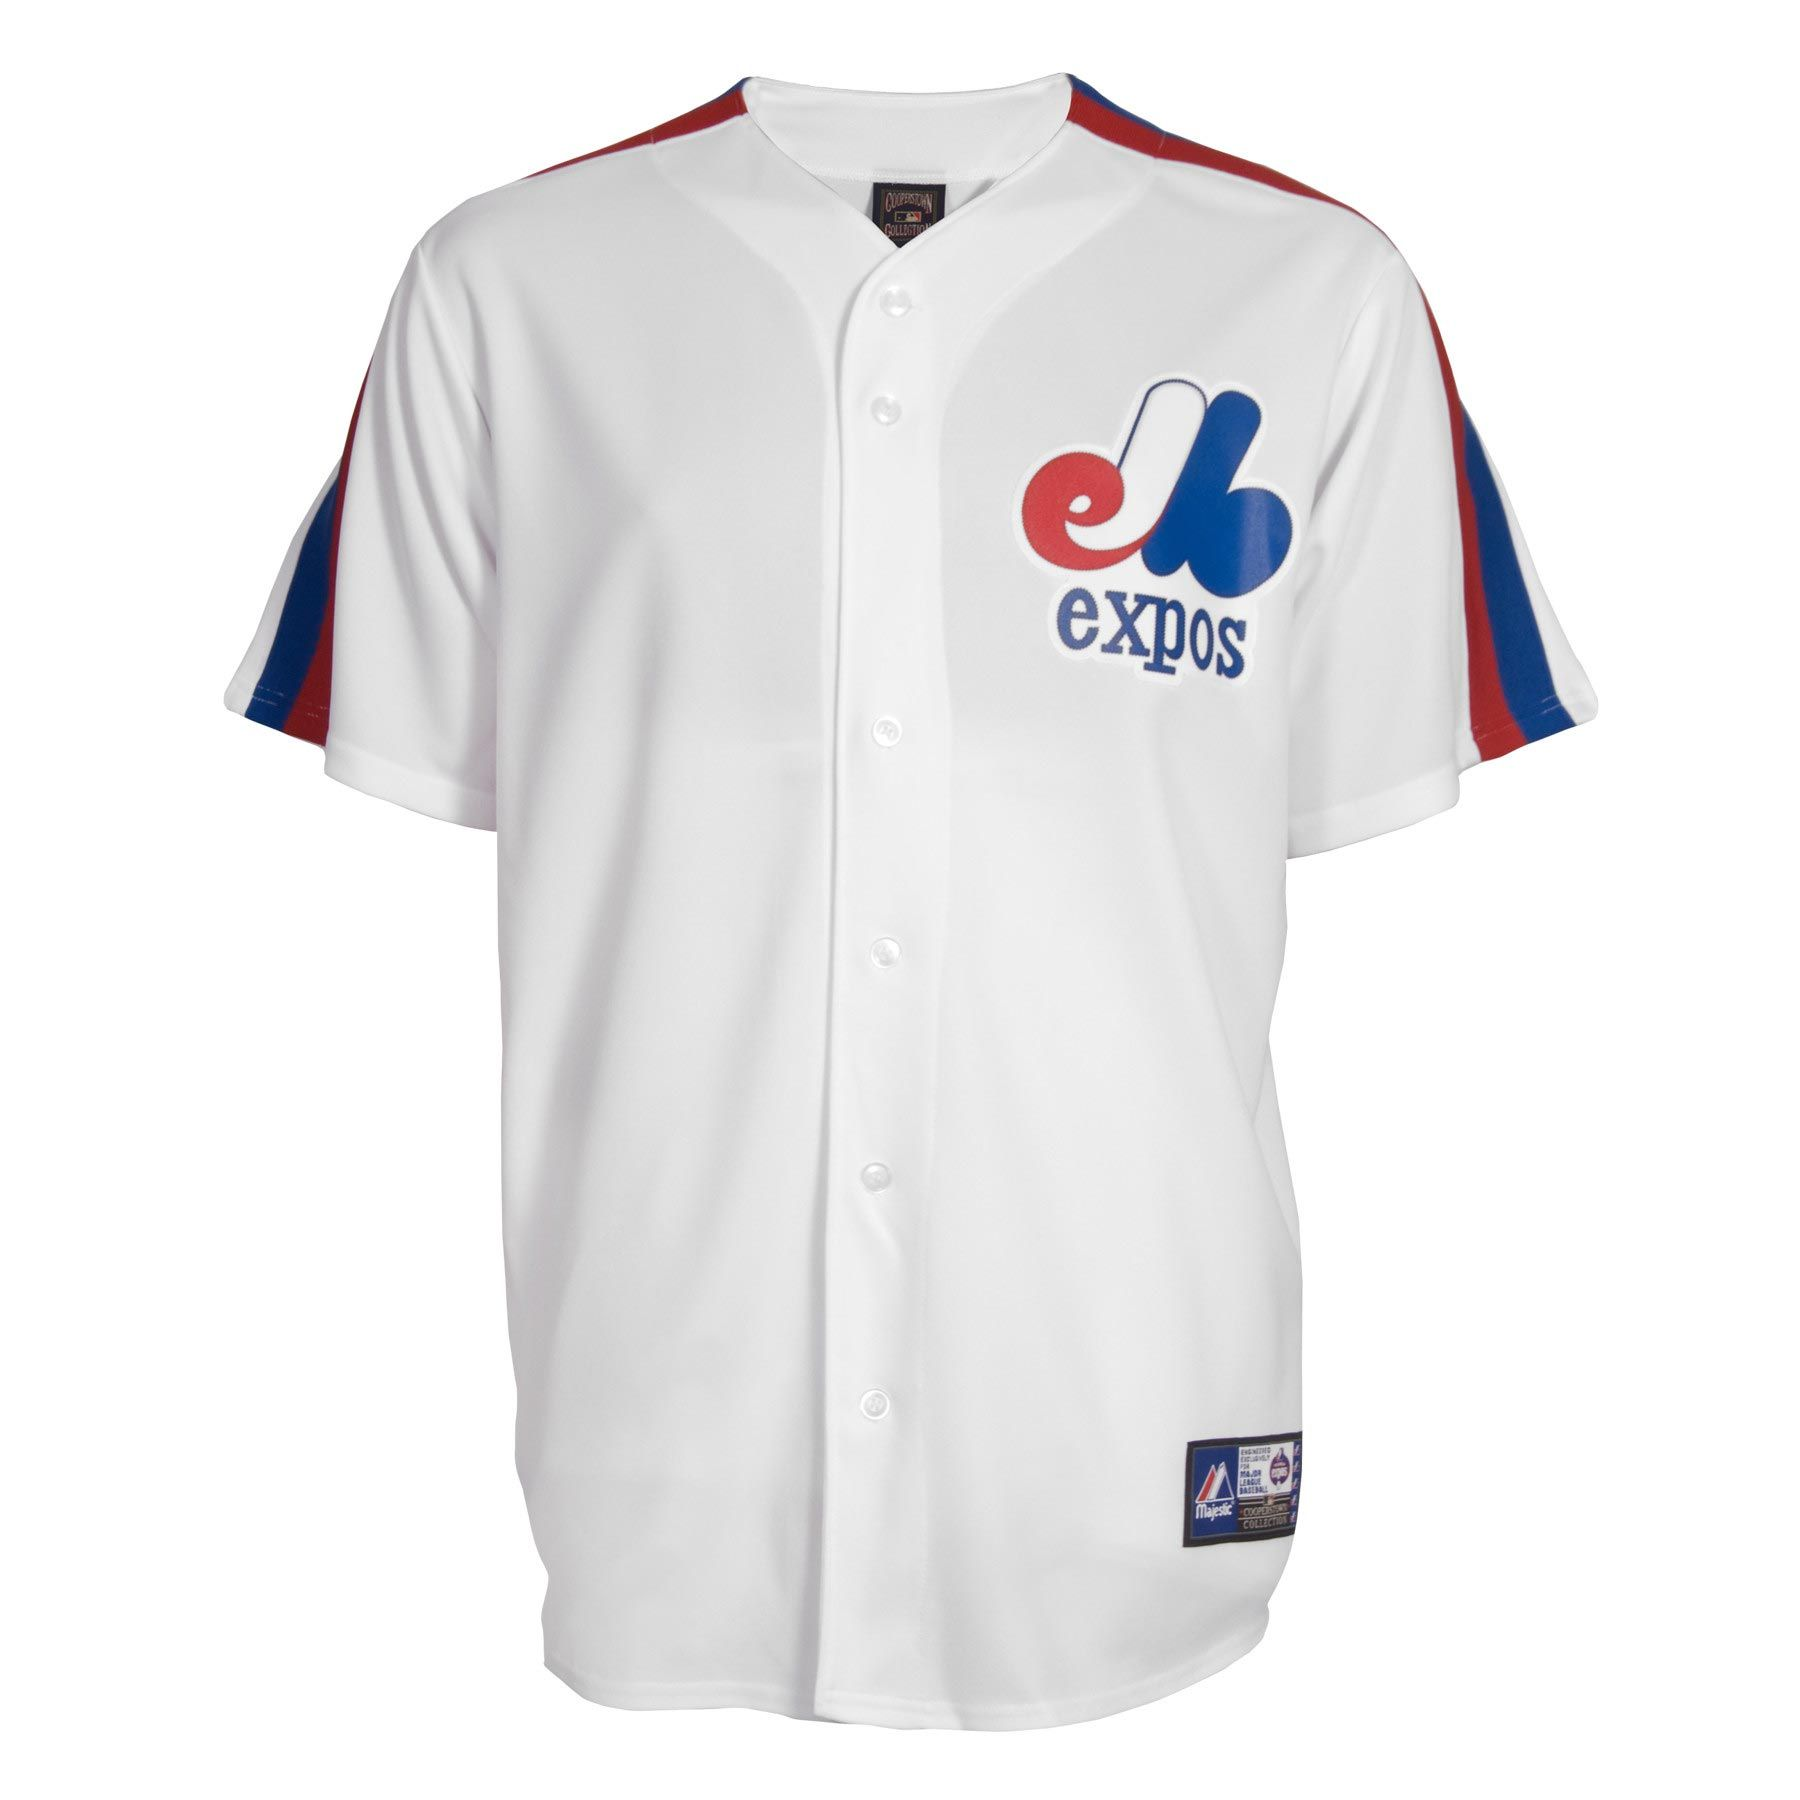 competitive price 69152 28e50 Montreal Expos Cooperstown Fan Replica Baseball Jersey ...